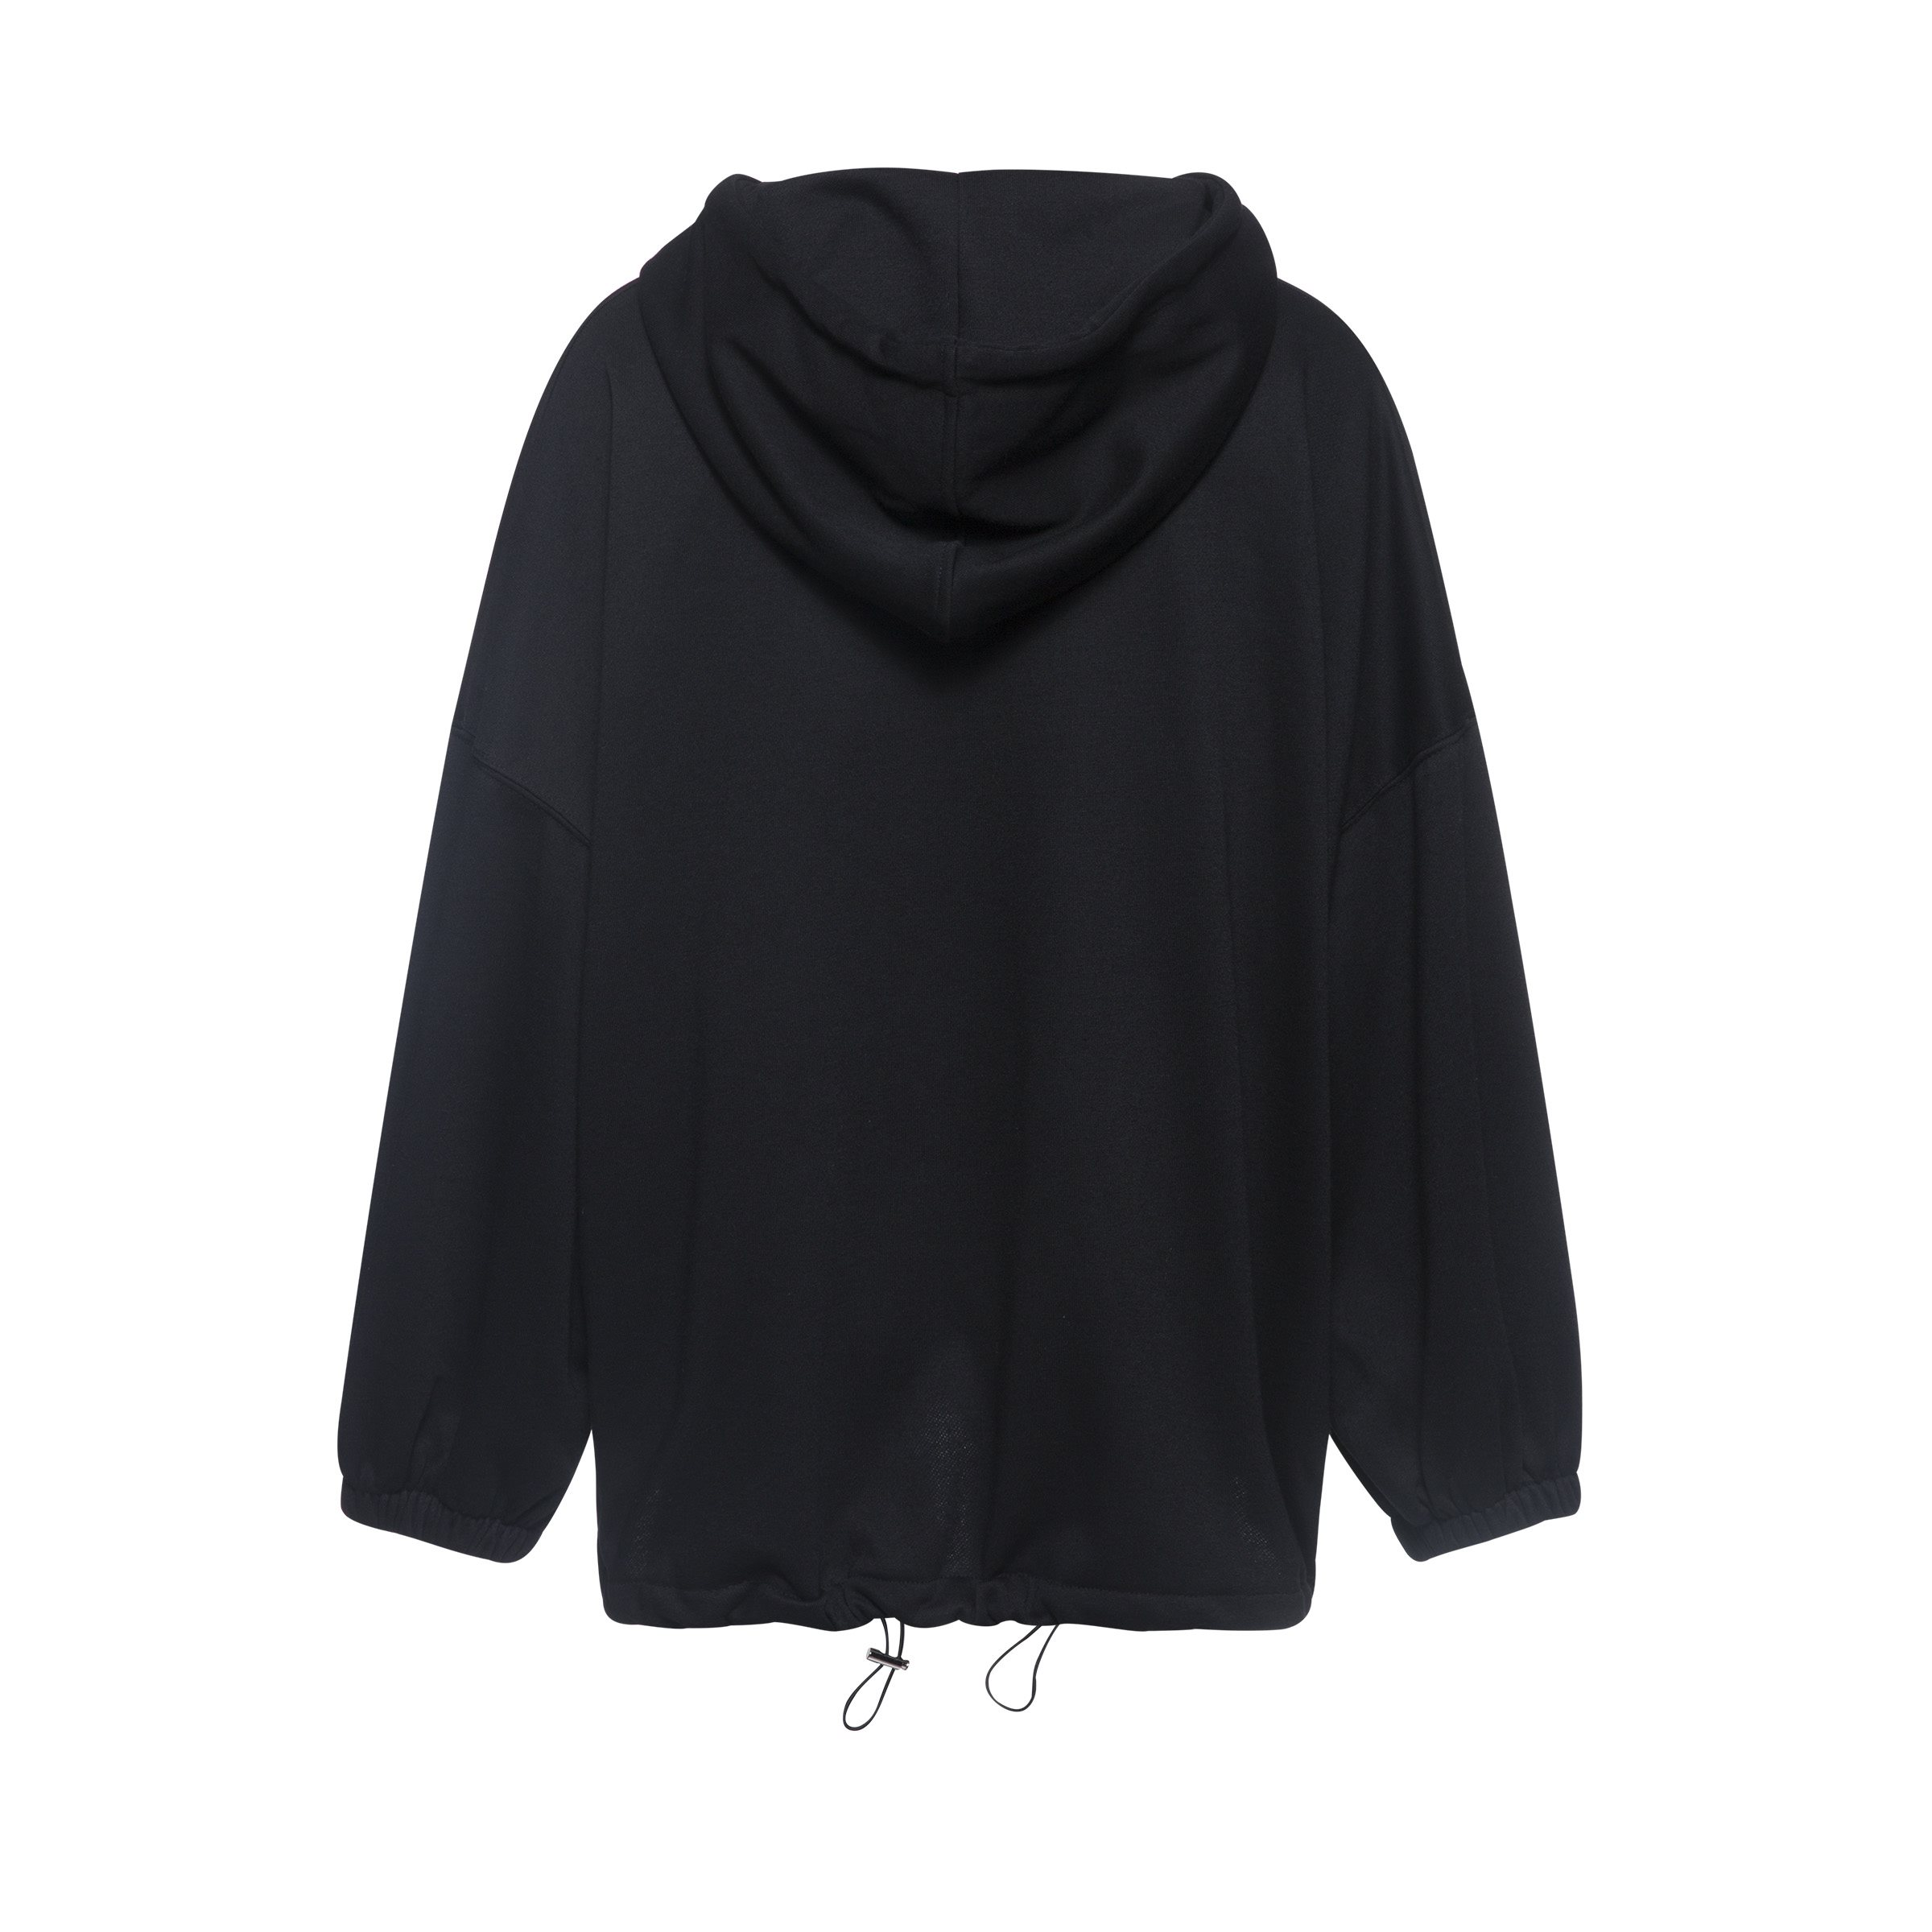 9cea0830f84 Women Hoodies Casual Black Gothic Cool Plus Size Loose Hooded Plain Female  Fashion Solid Goth Punk Tops Large Sizes Sweatshirts